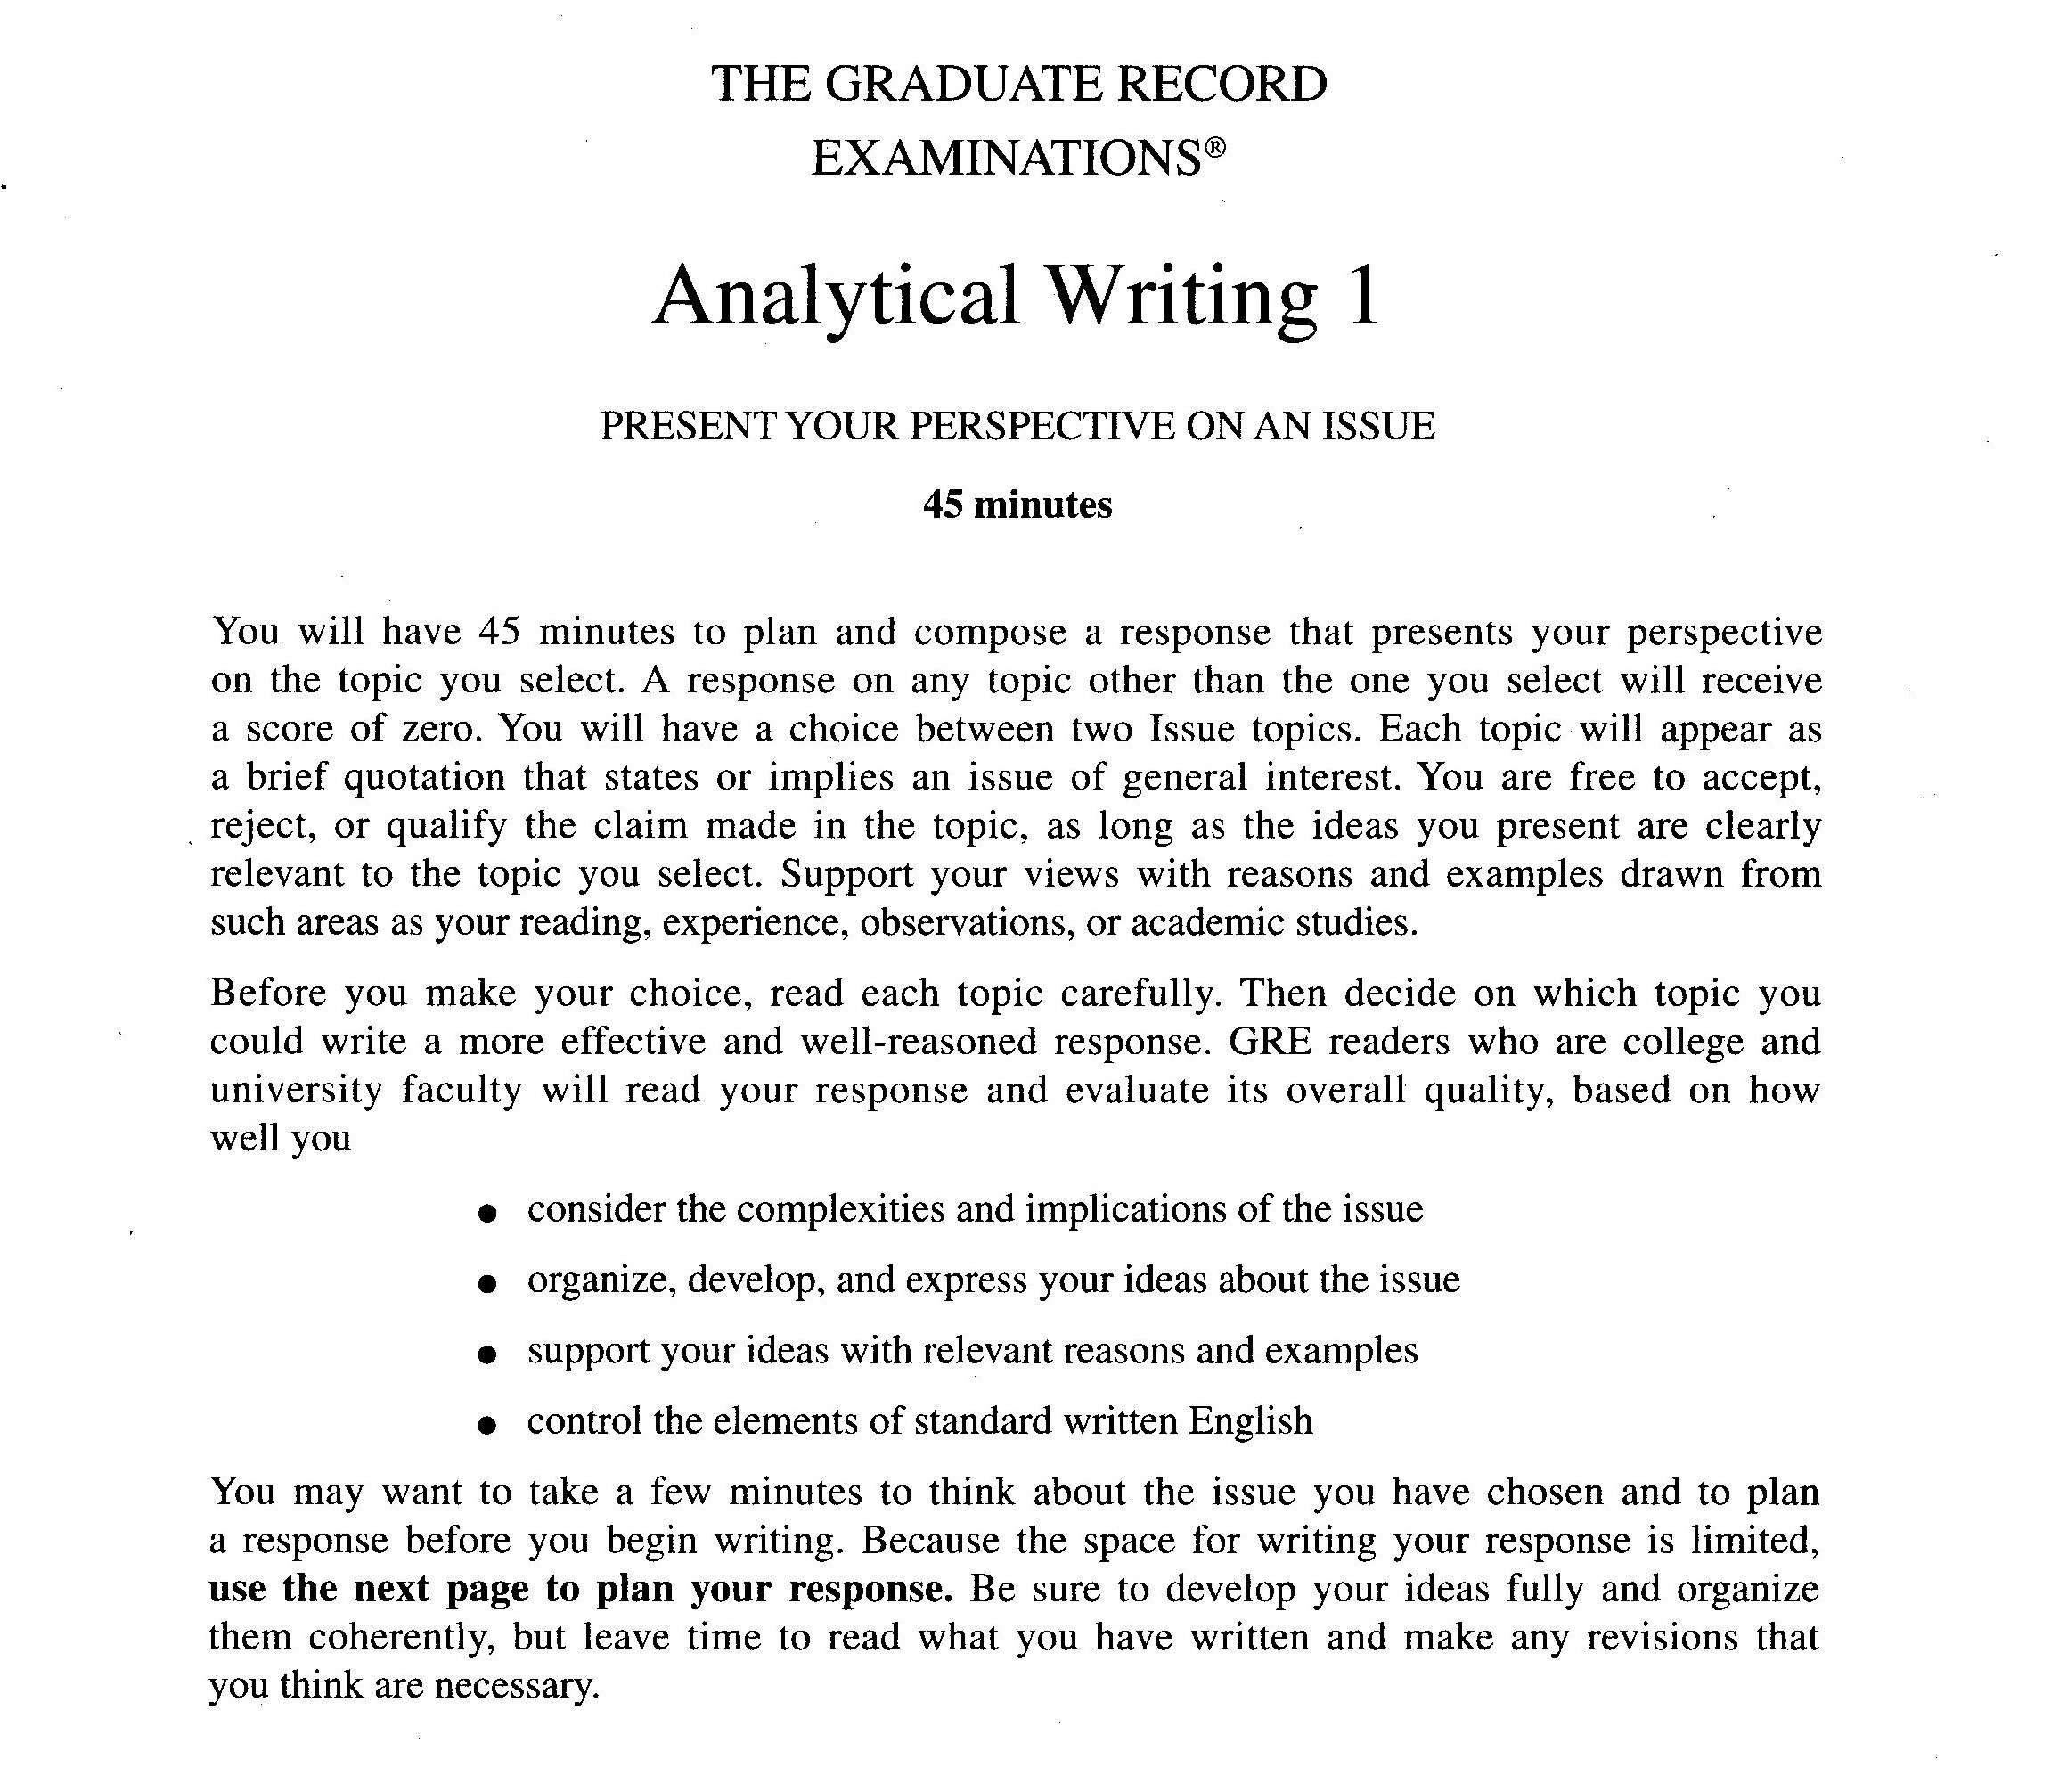 010 Gre Argument Essay Examples Example Unusual Sample Questions Analytical Writing Samples Full